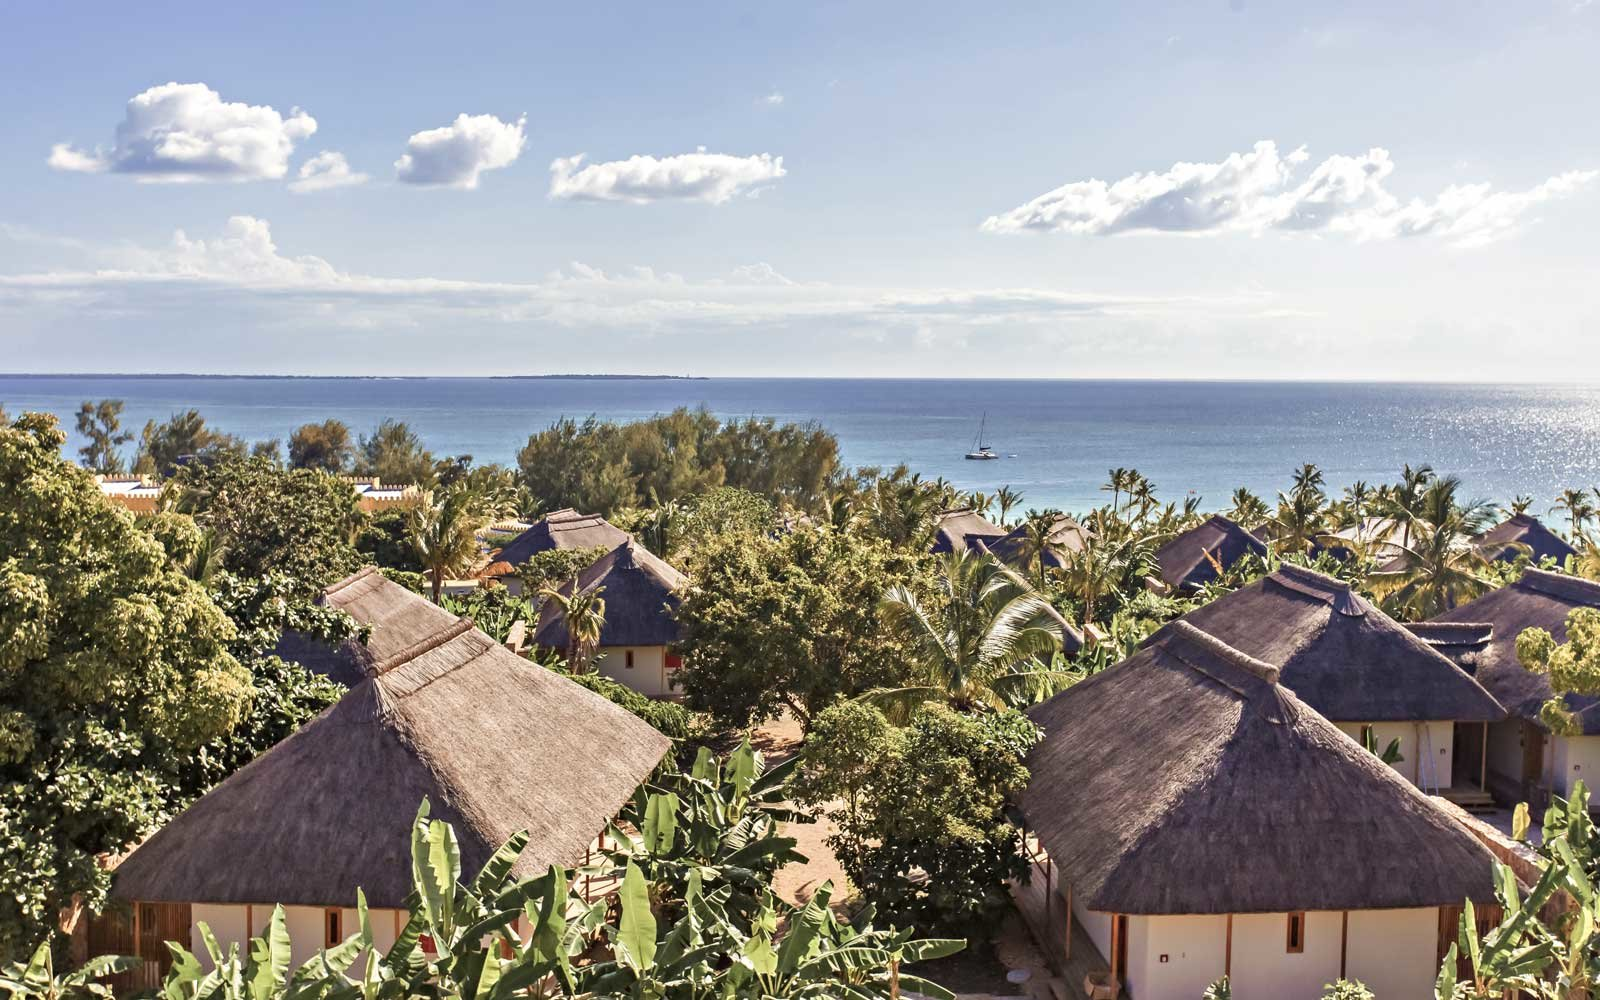 Overview of the Zuri Zanzibar Resort in Tanzania